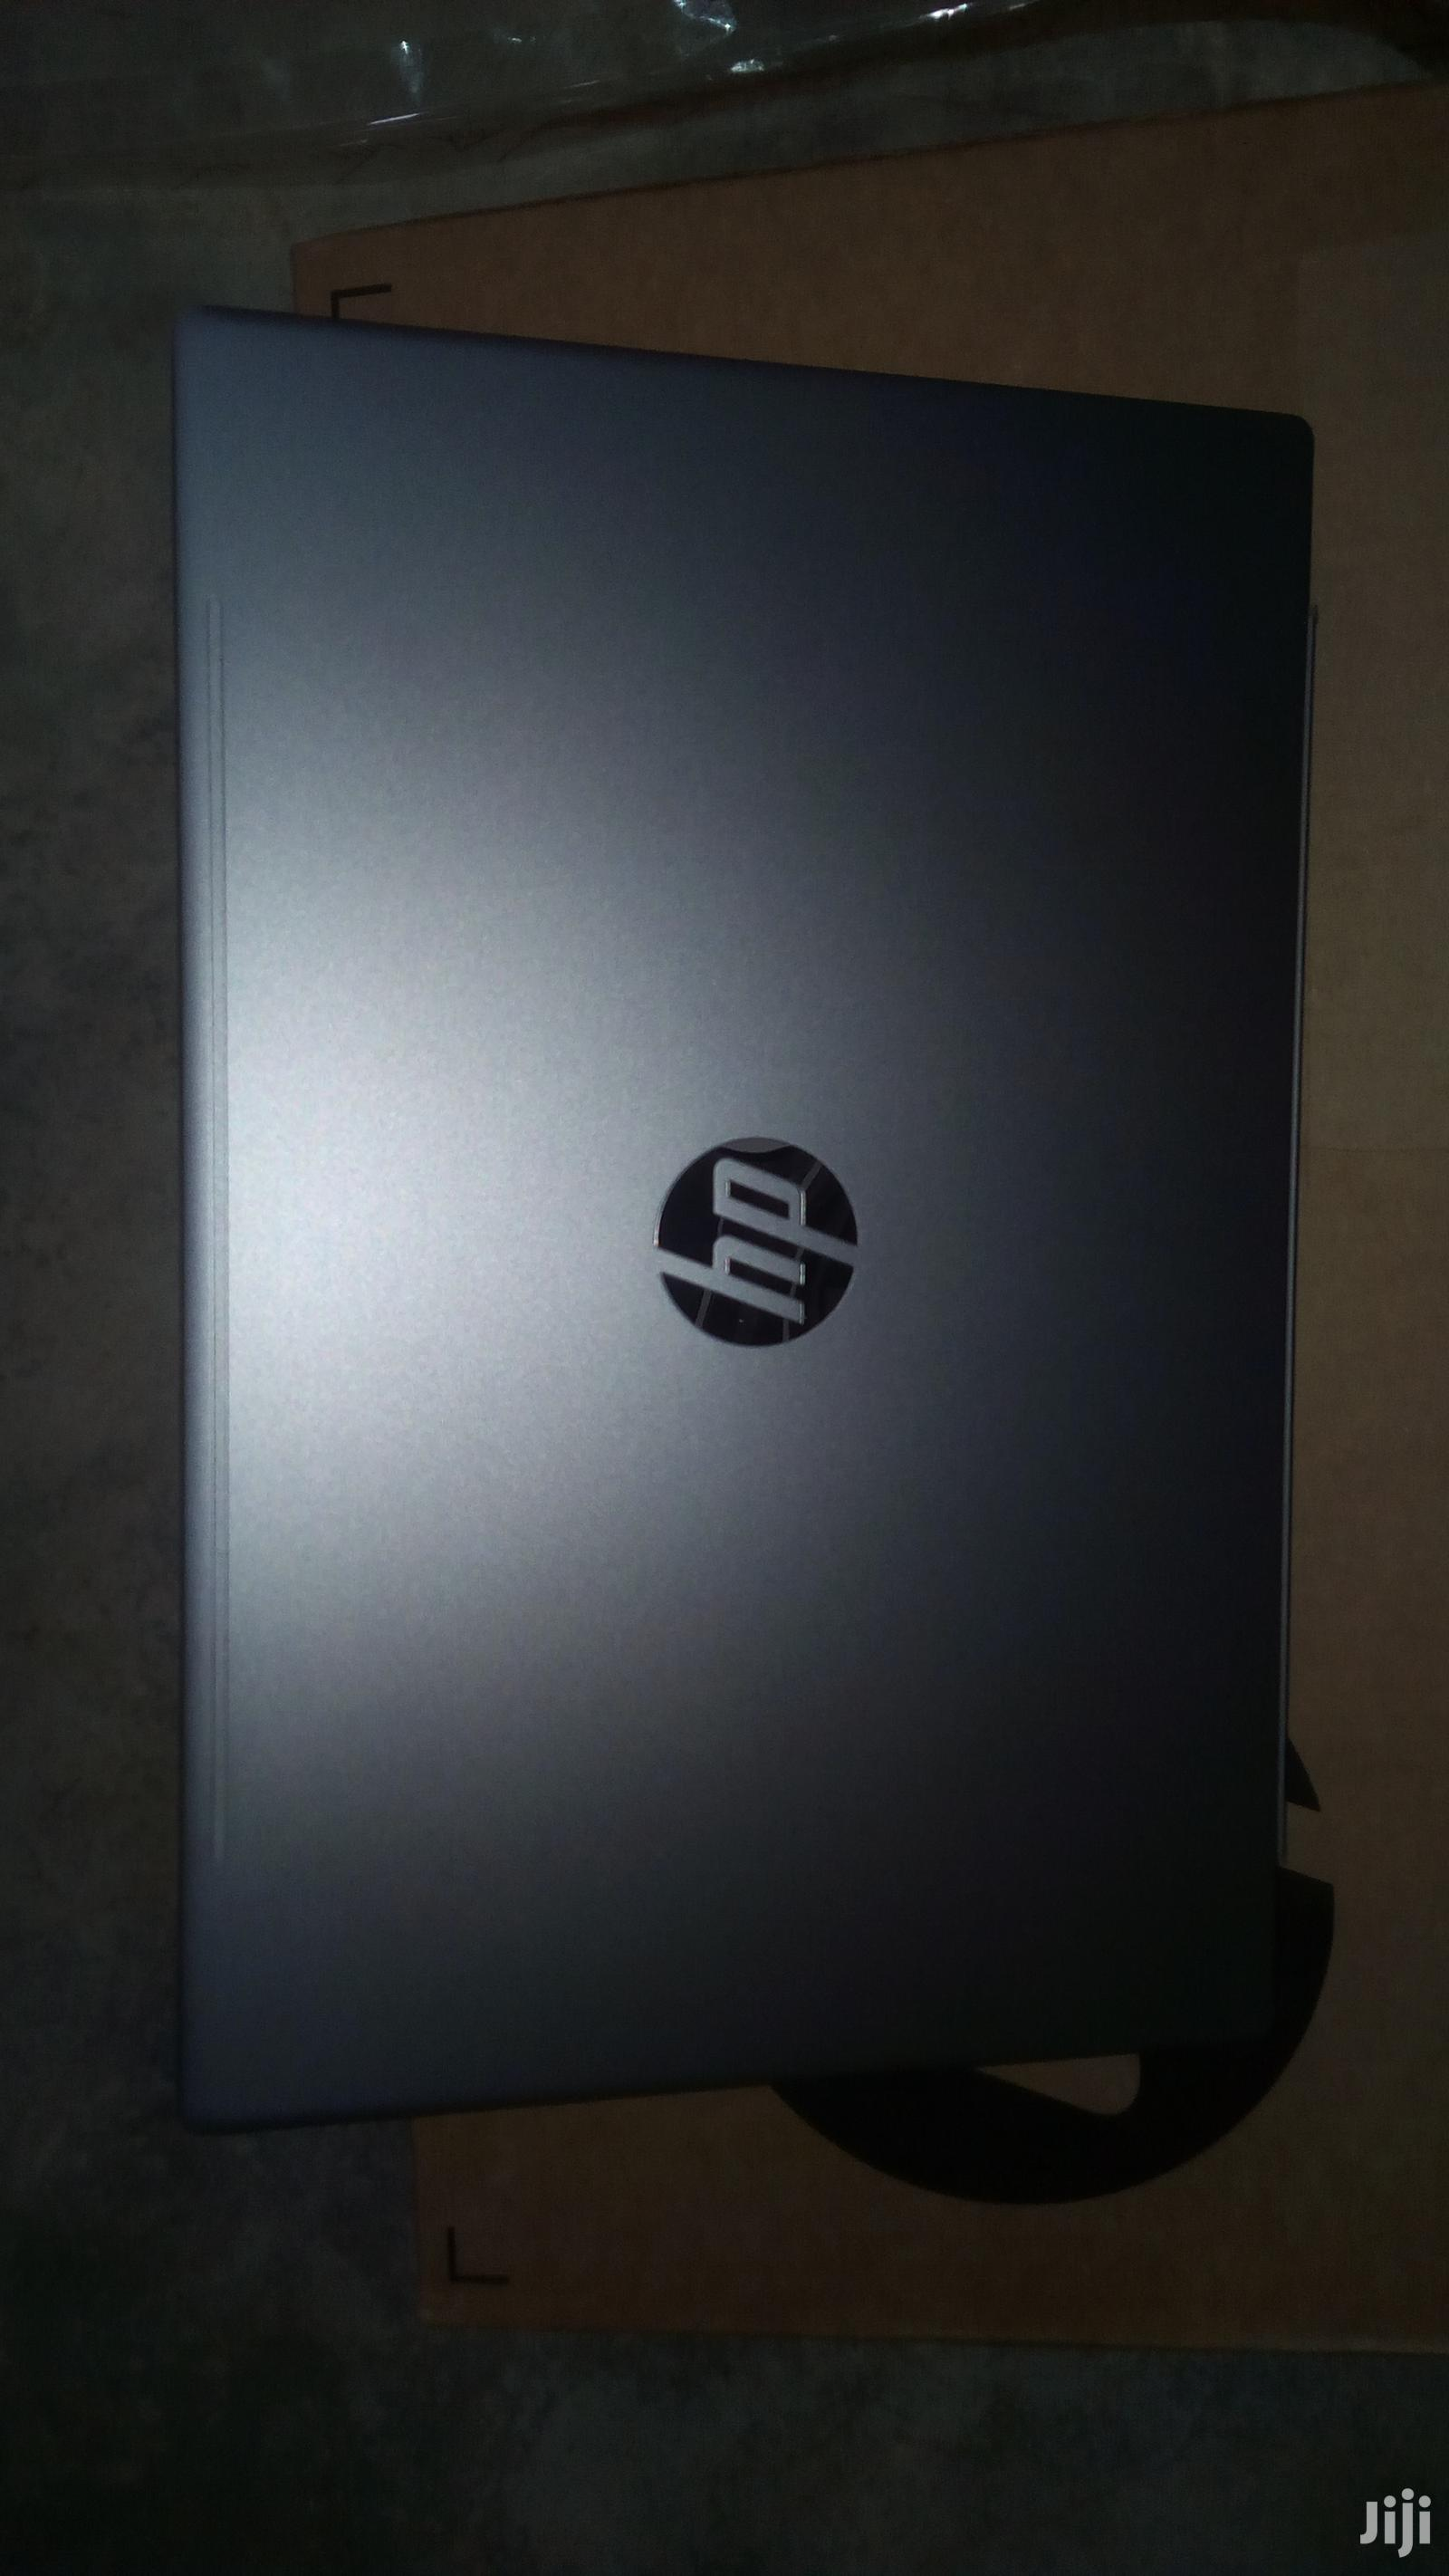 Archive: New Laptop HP Pavilion 15 8GB Intel Core i5 HDD 1T